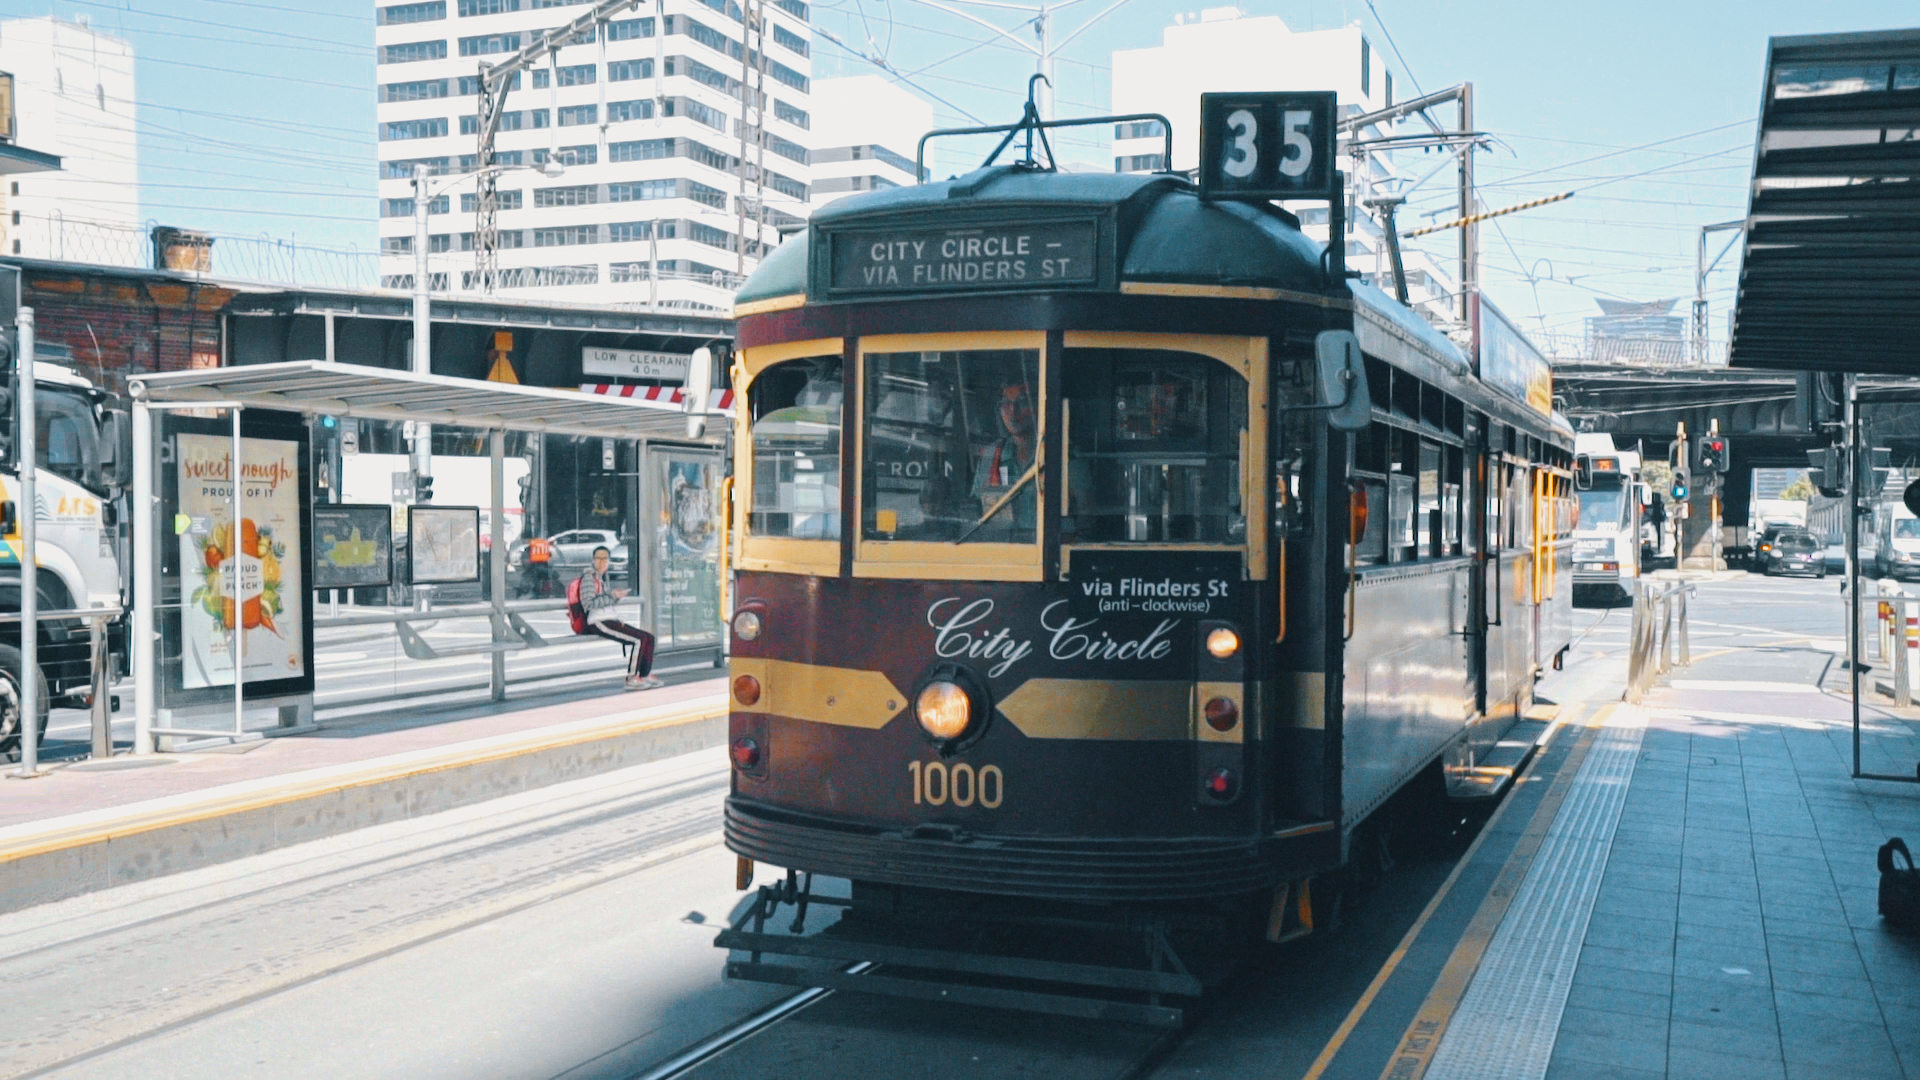 City-Circle-Tram-Welcome-To-Travel-Melbourne-1